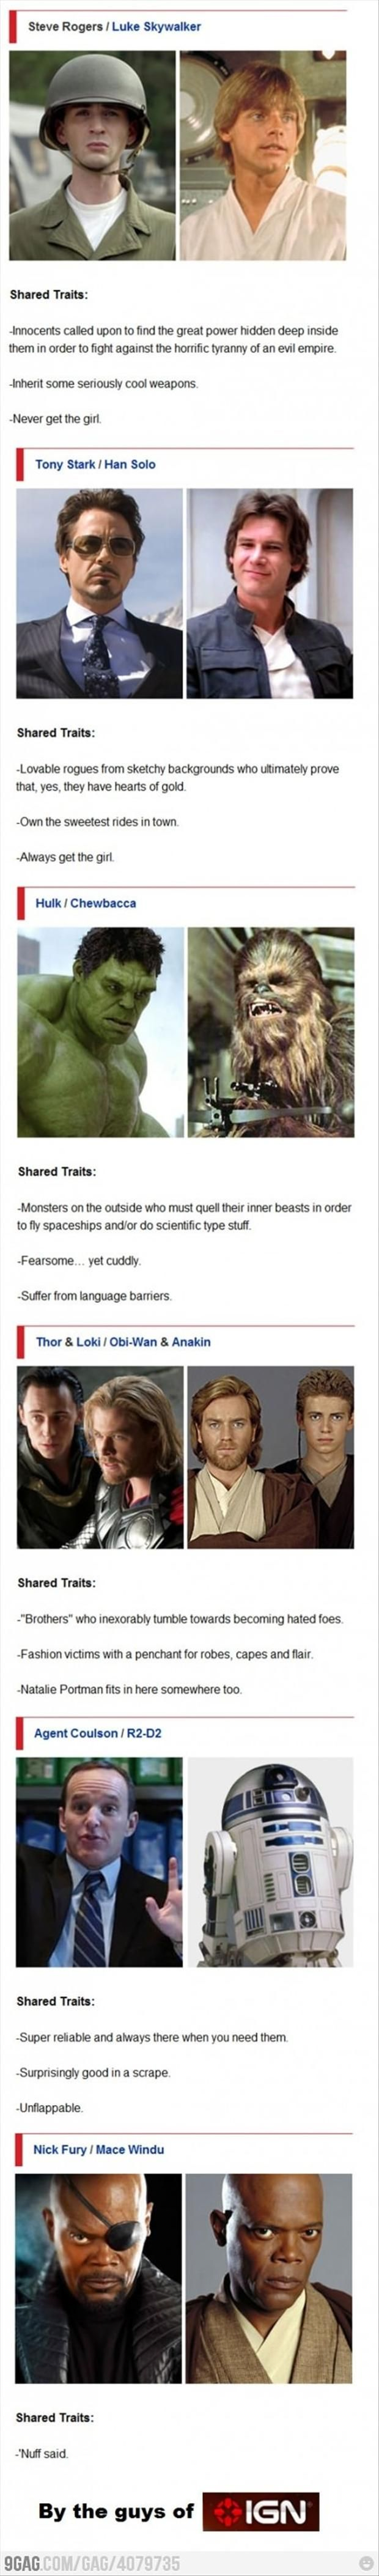 Star Wars ASSEMBLE!